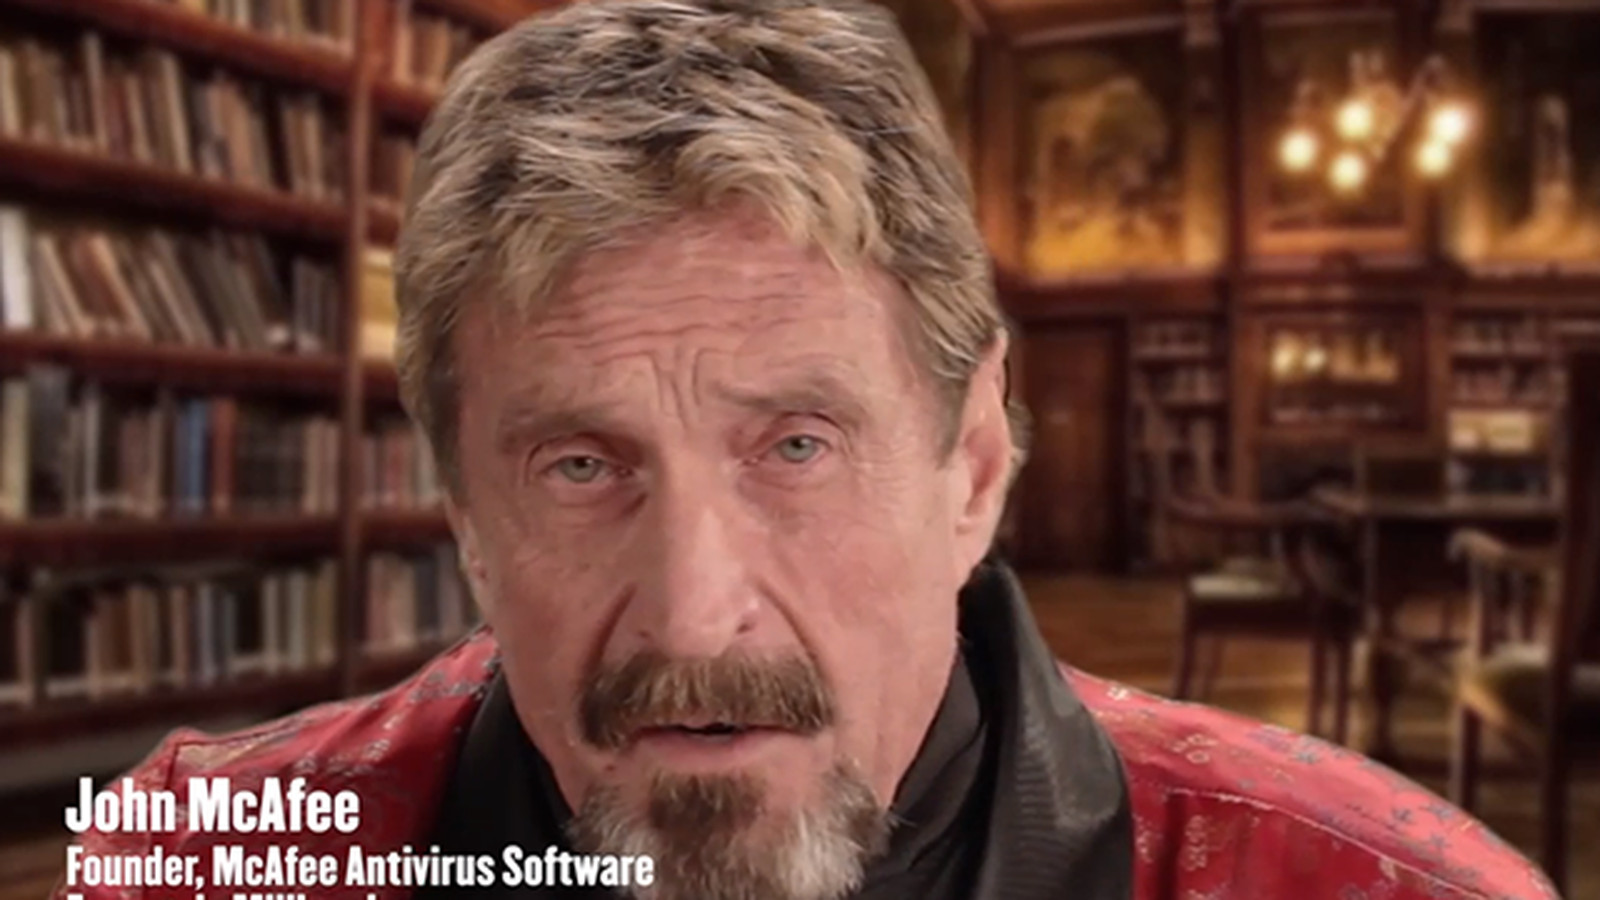 John McAfee wants to sell you a $100 gadget that blocks the NSA | The Verge - mcafee